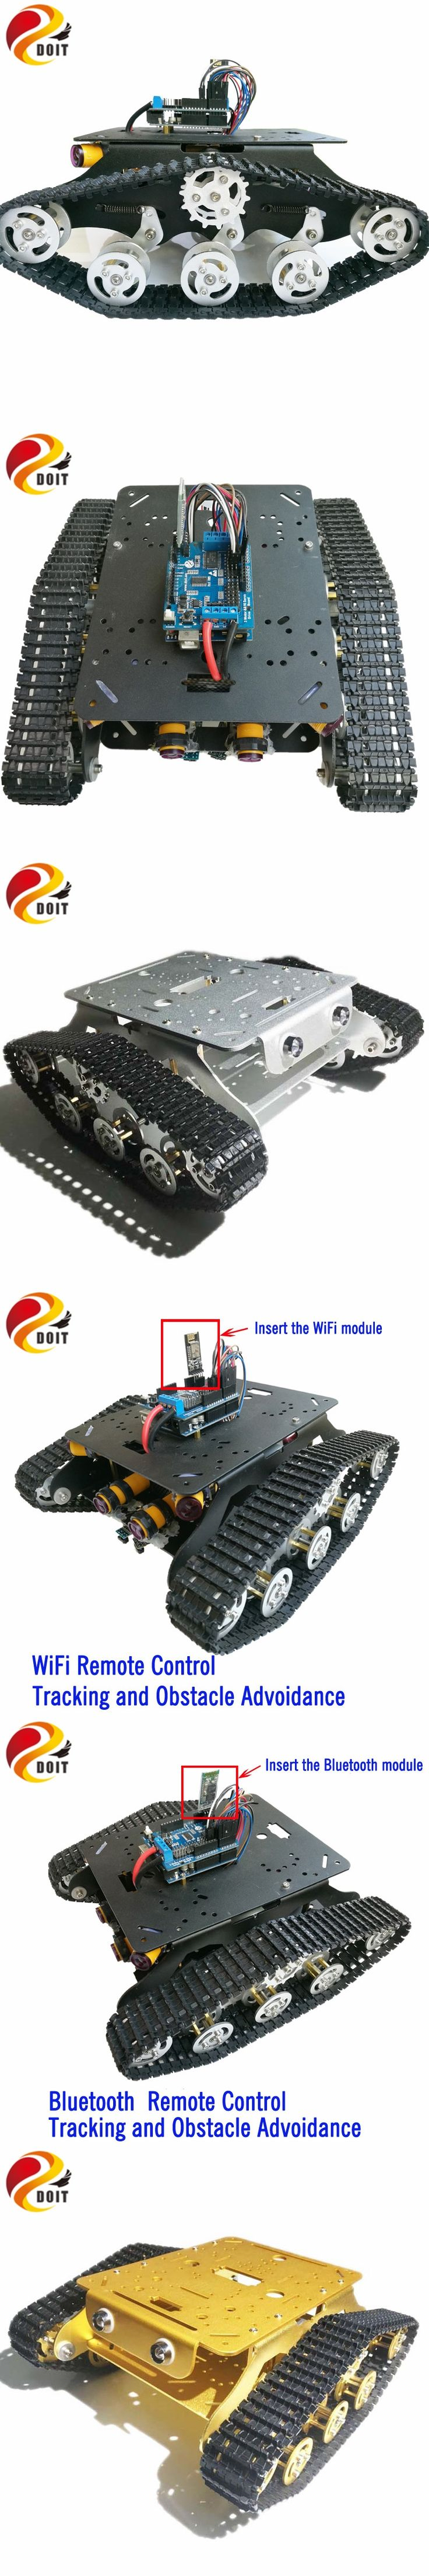 Official DOIT TSD300 Arduino Bluetooth/WiFi Control Crawler Tank Car Chassis with Tracking and Obstacle Avoidance RC Remote Toy